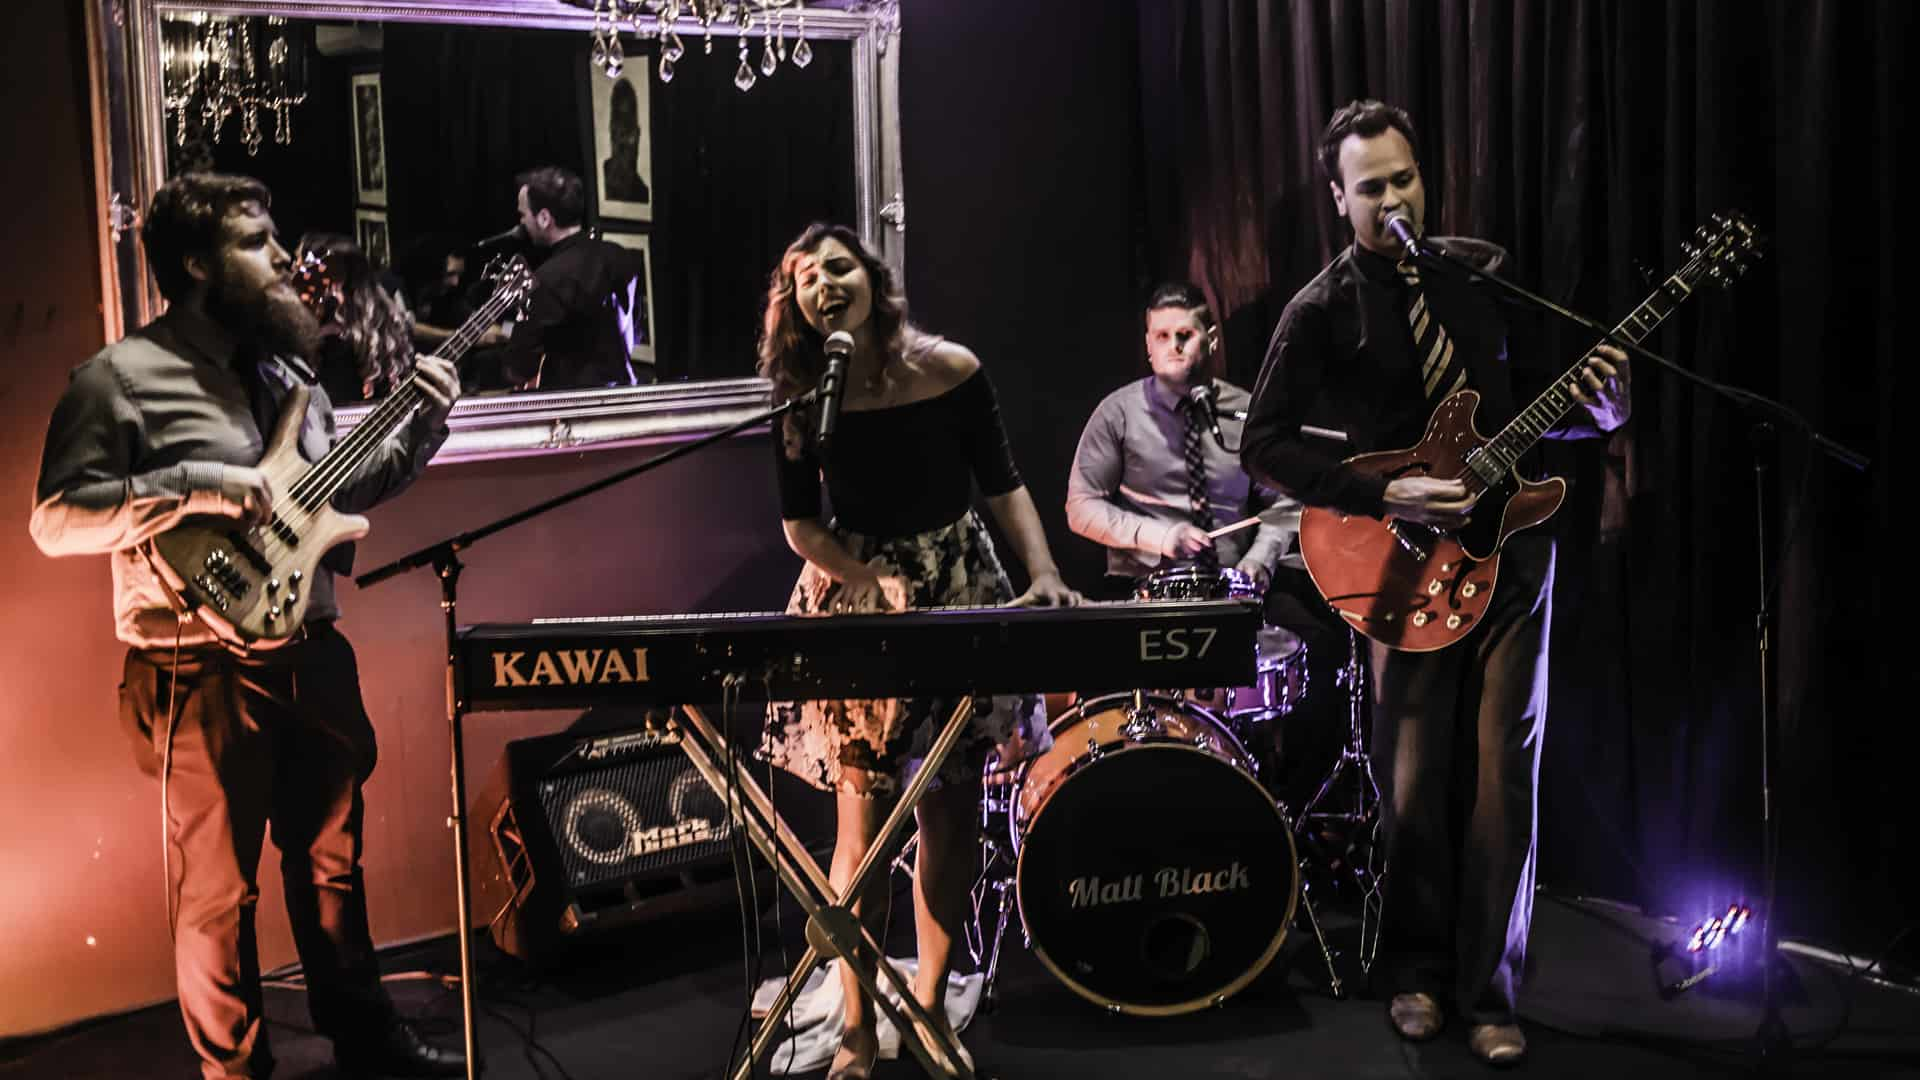 wedding band melbourne best musicians hire for reception corporate event